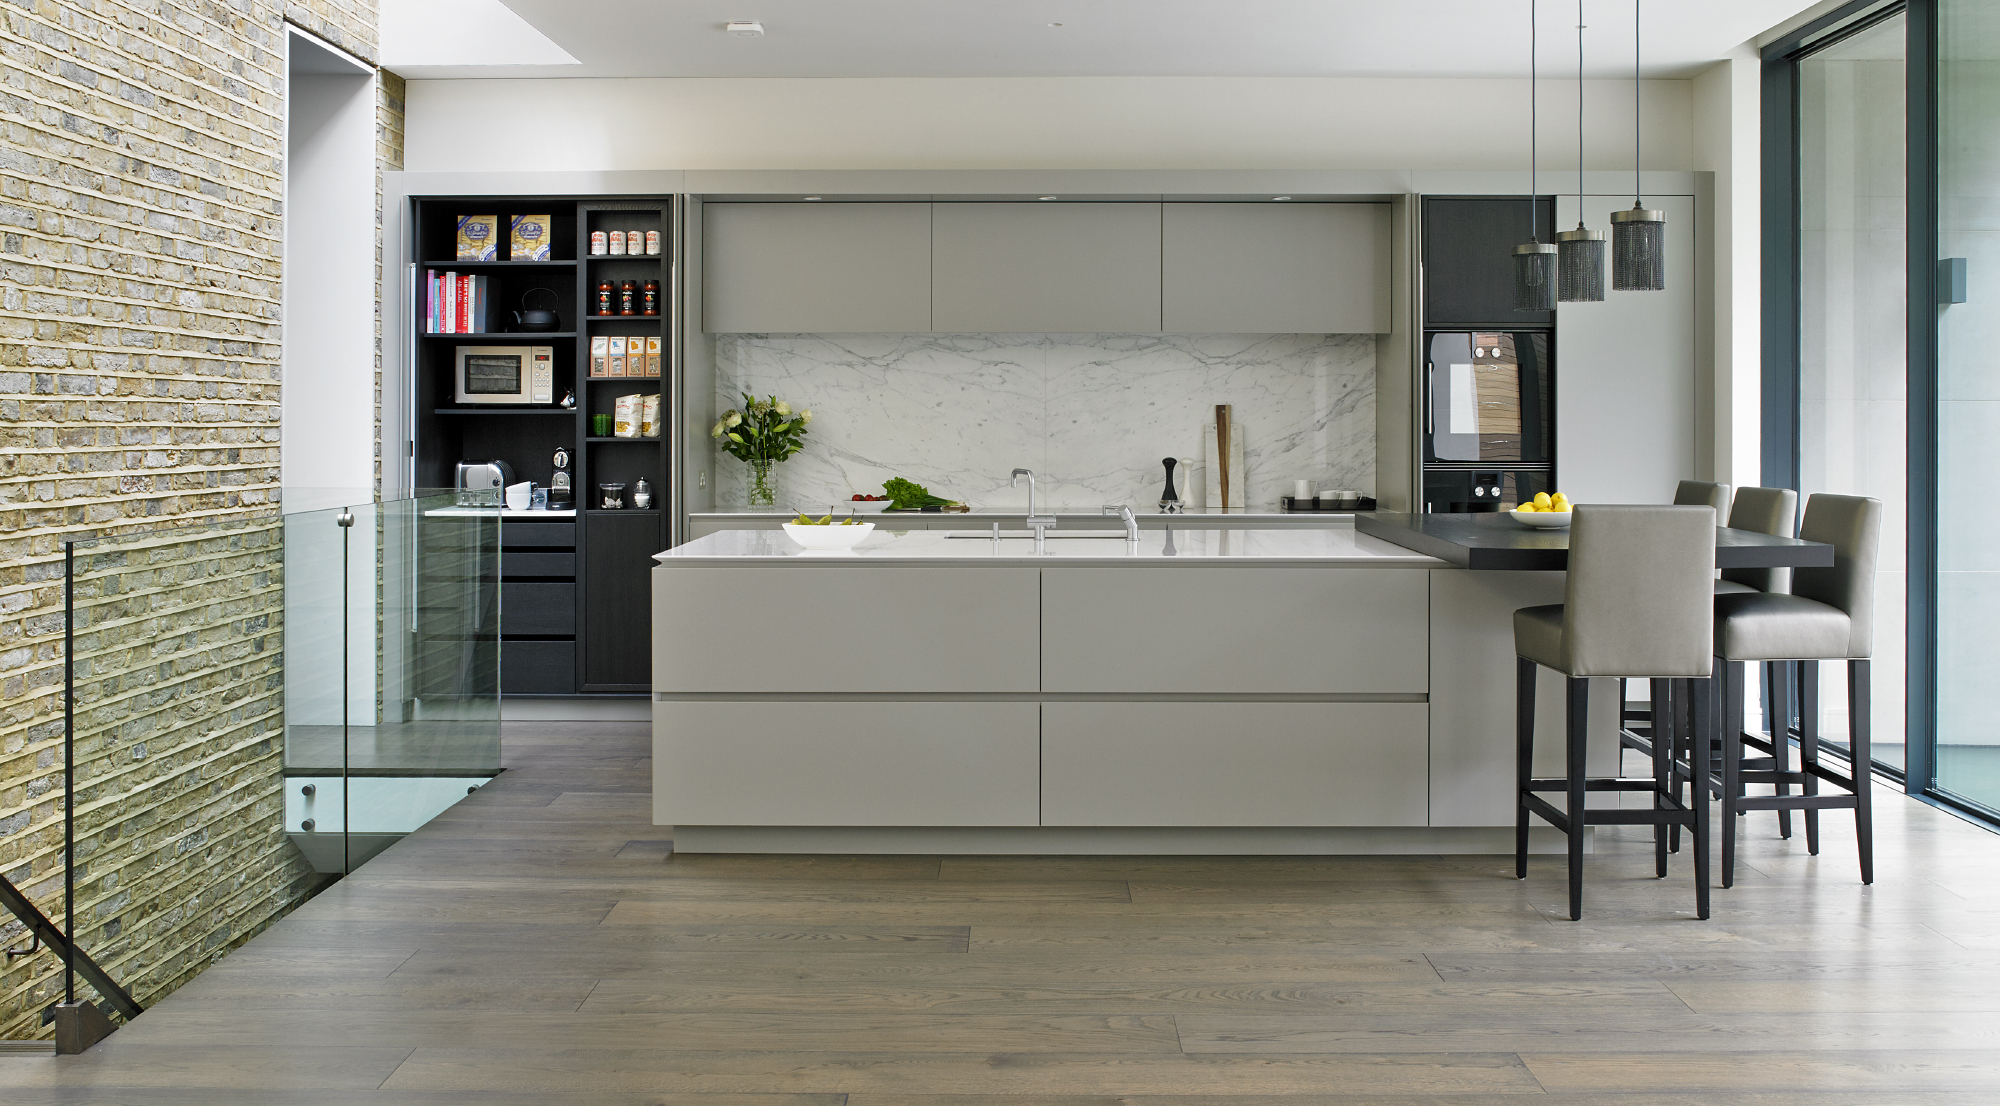 Modern handleless kitchen design for Victorian family home in Wandsworth with silver grey matt-lacquered cabinets with pure white composite worktops, Calacatta marble splashback, island with breakfast bar and pantry cupboard.